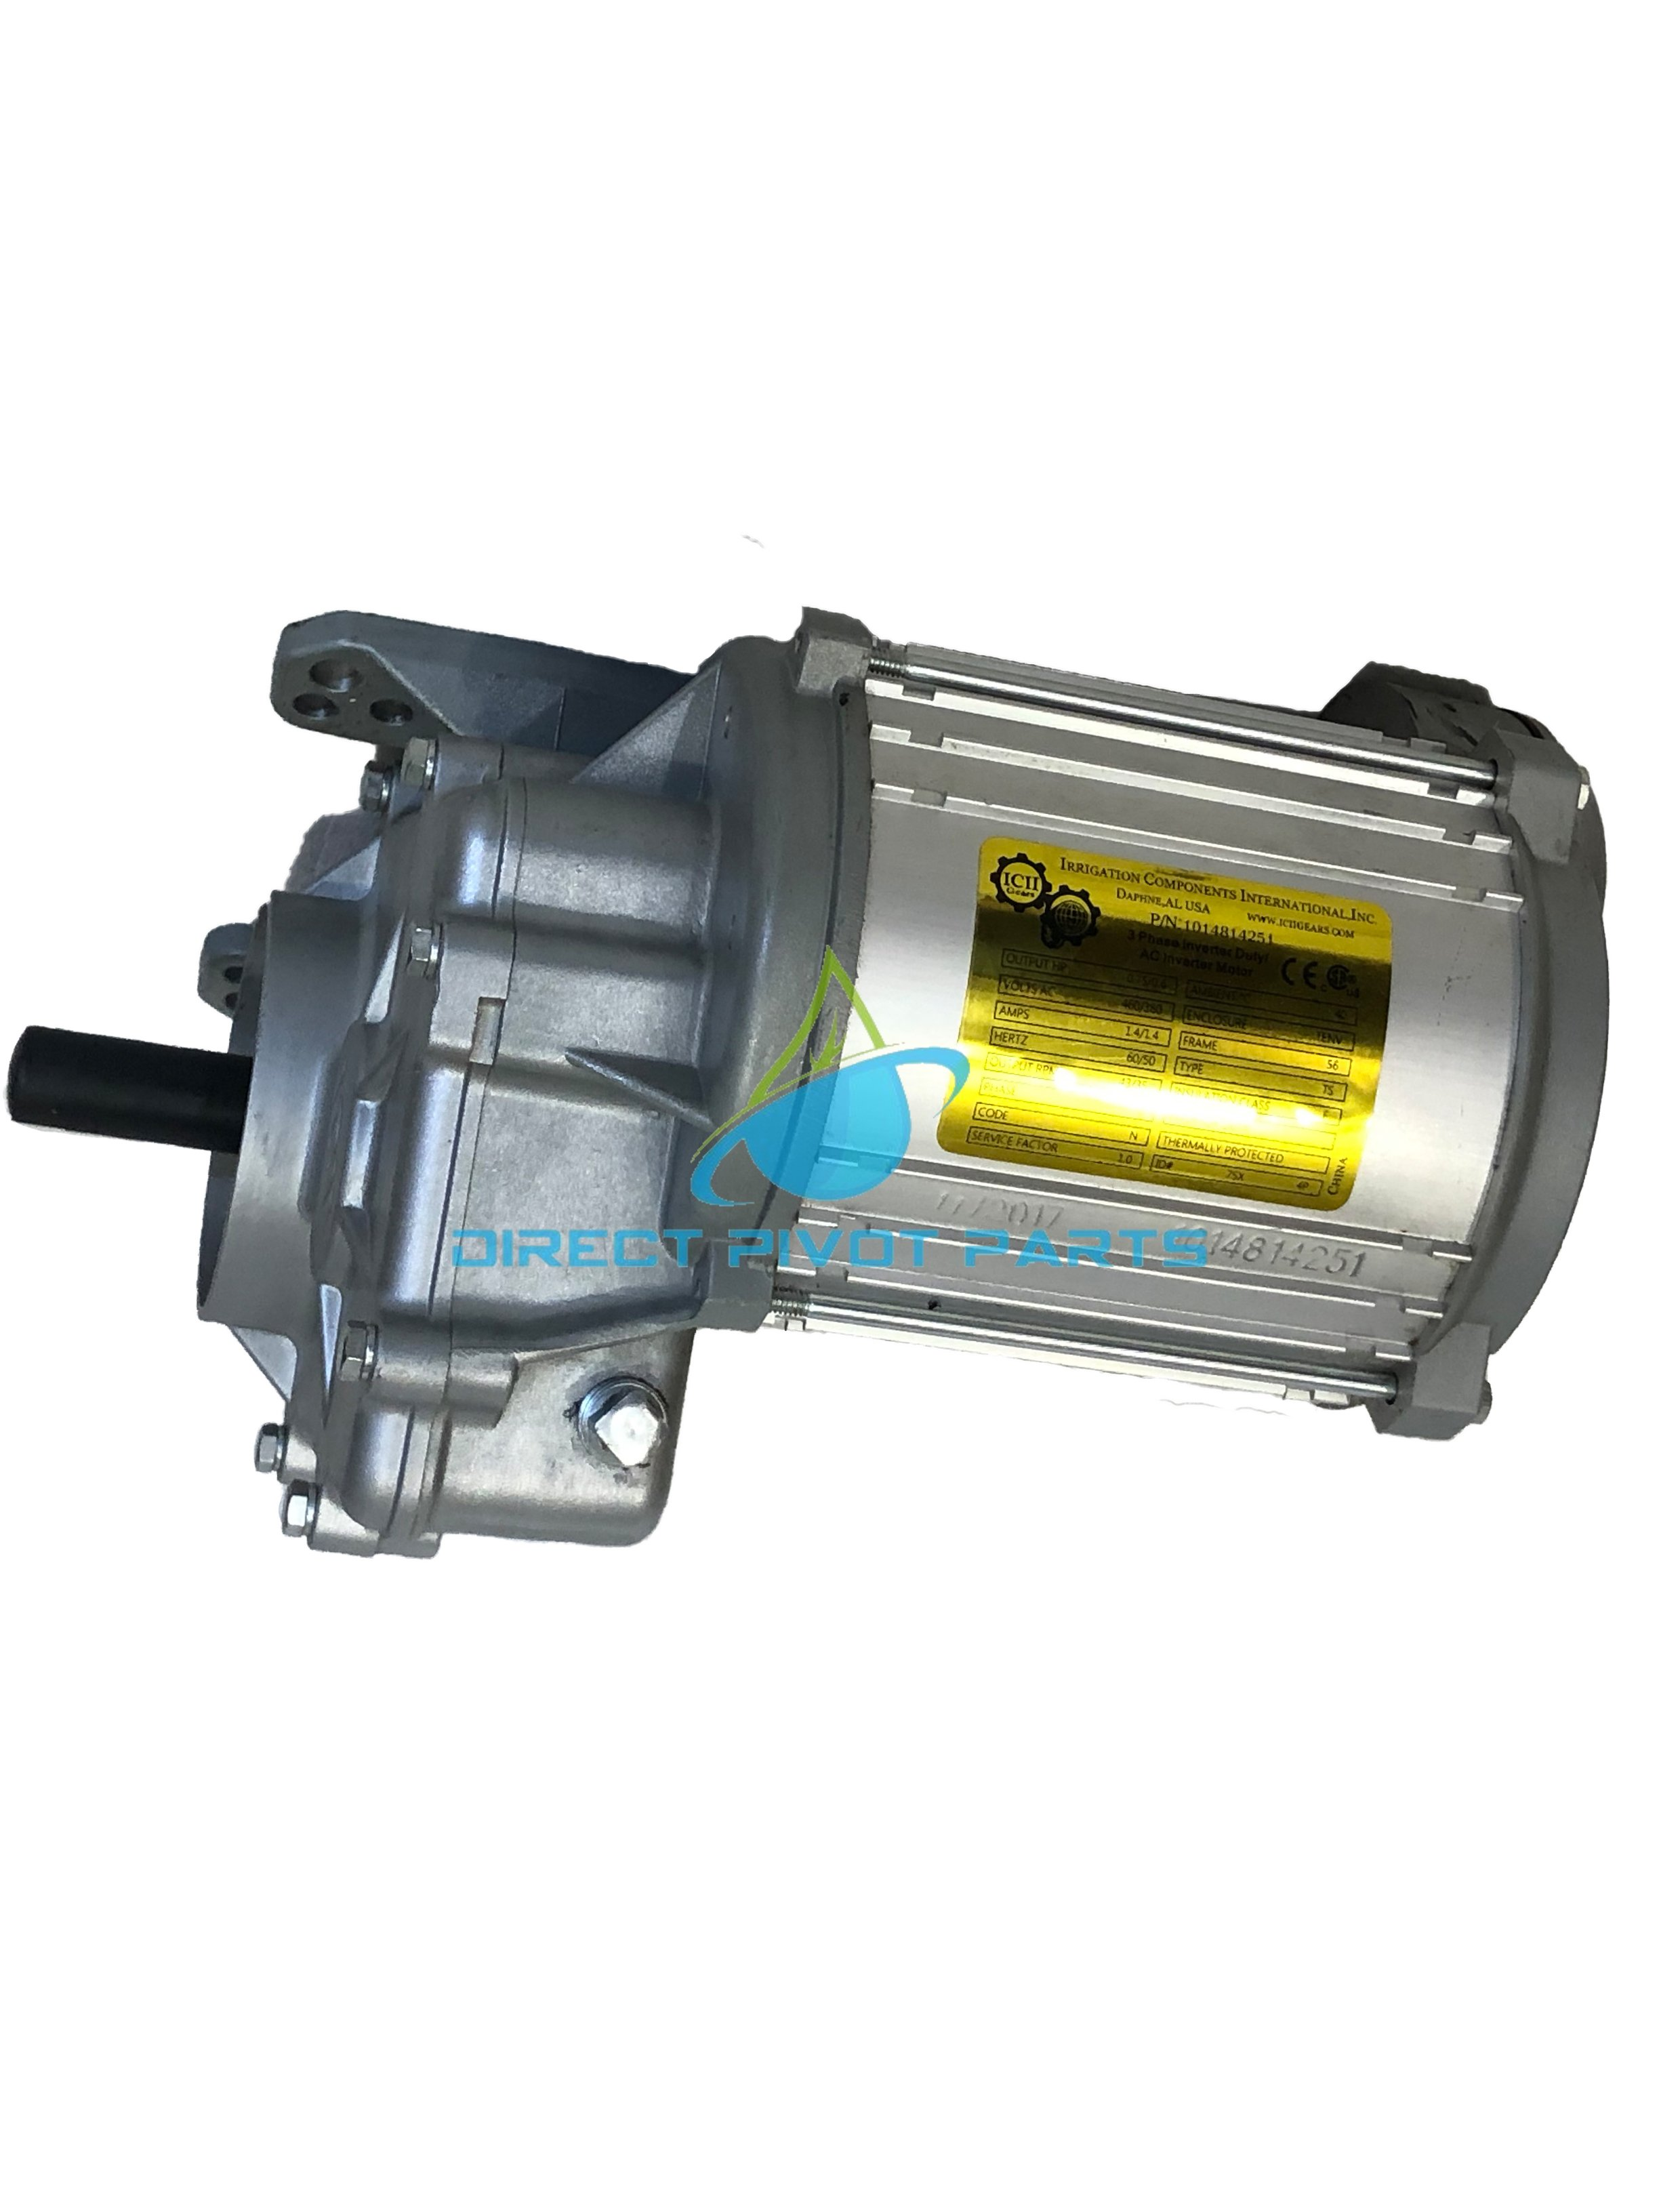 ICII Universal Pivot Center Drive 1.5 HP 57 RPM Gear Ratio 30:1